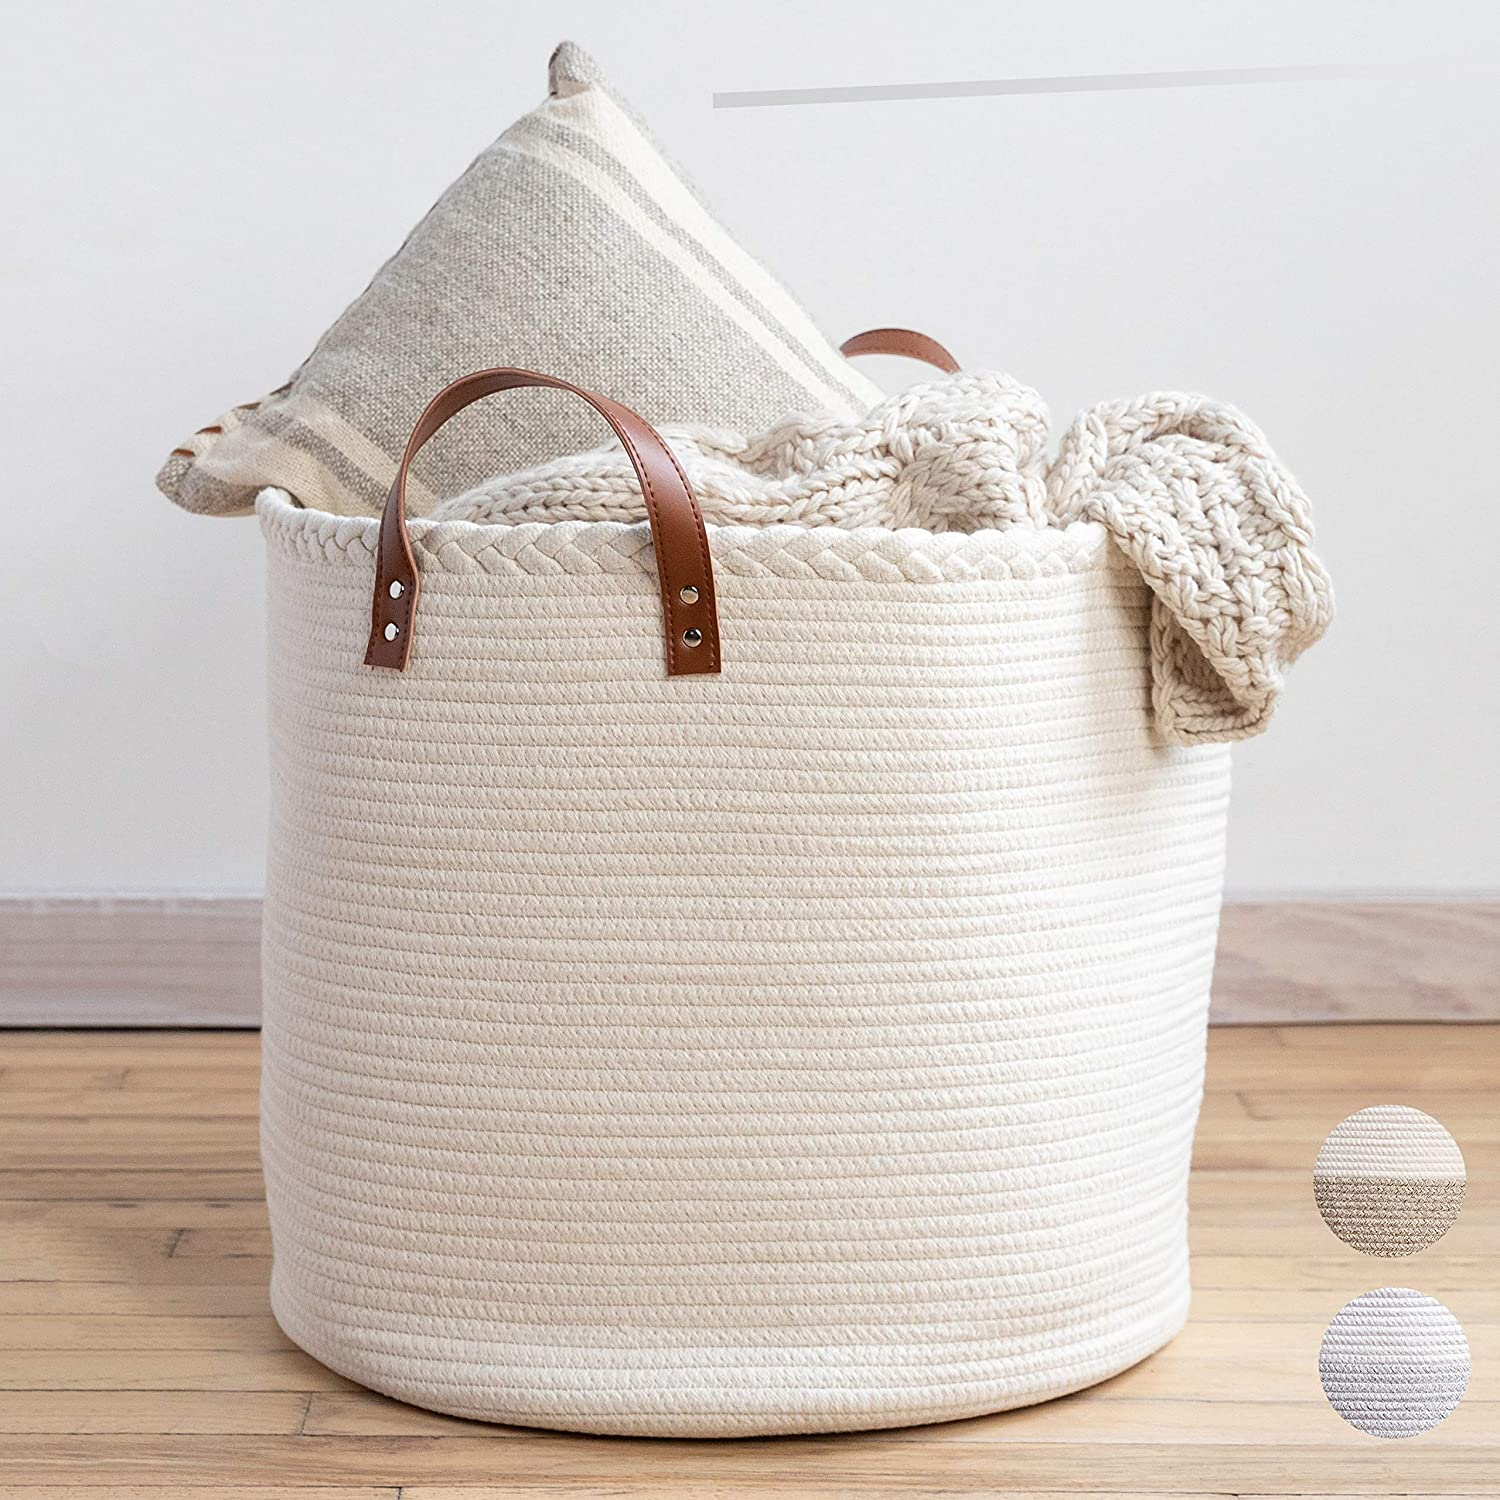 "XXL Premium Cotton Rope Basket 18""x18""x16"" - Big Basket for Blankets Living Room – Woven Laundry Basket- White Basket - Large Blanket Basket Living Room - Storage Basket - Large Baskets for Blankets"